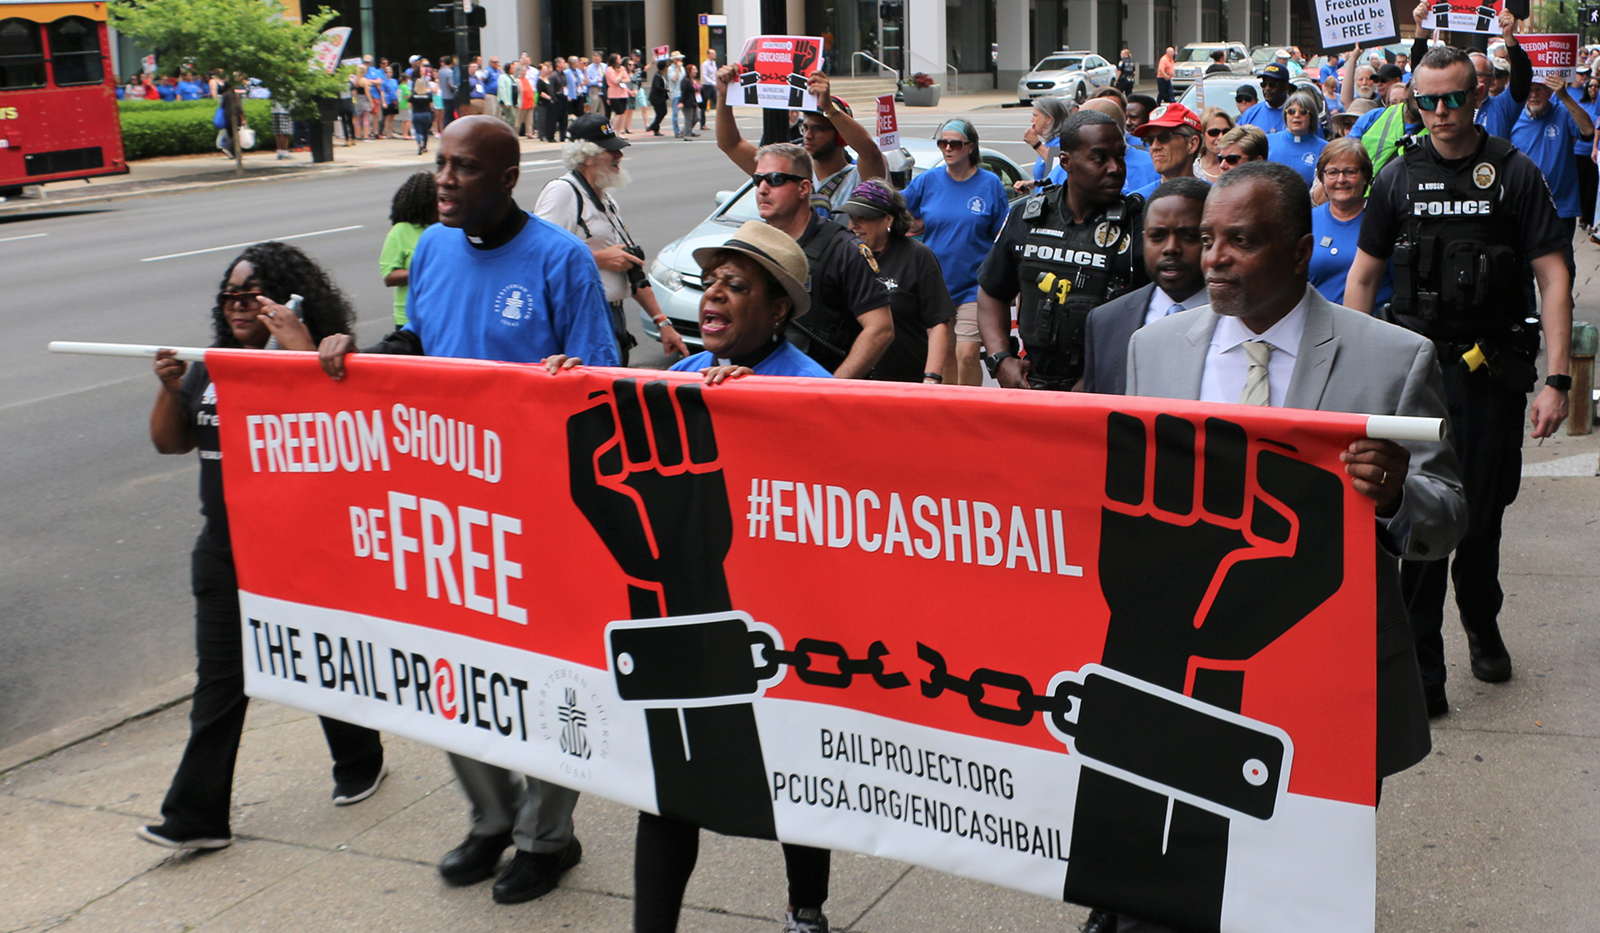 More than 250 people marched in Louisville in June 2019, to end cash bail. Left to right, Shameka Parrish-Wright of The Bail Project; the Rev. Dr. J. Herbert Nelson, II; the Rev. Dr. Diane Moffett; and J. Phillip Thompson, deputy mayor of New York City. Photo by Tammy Warren